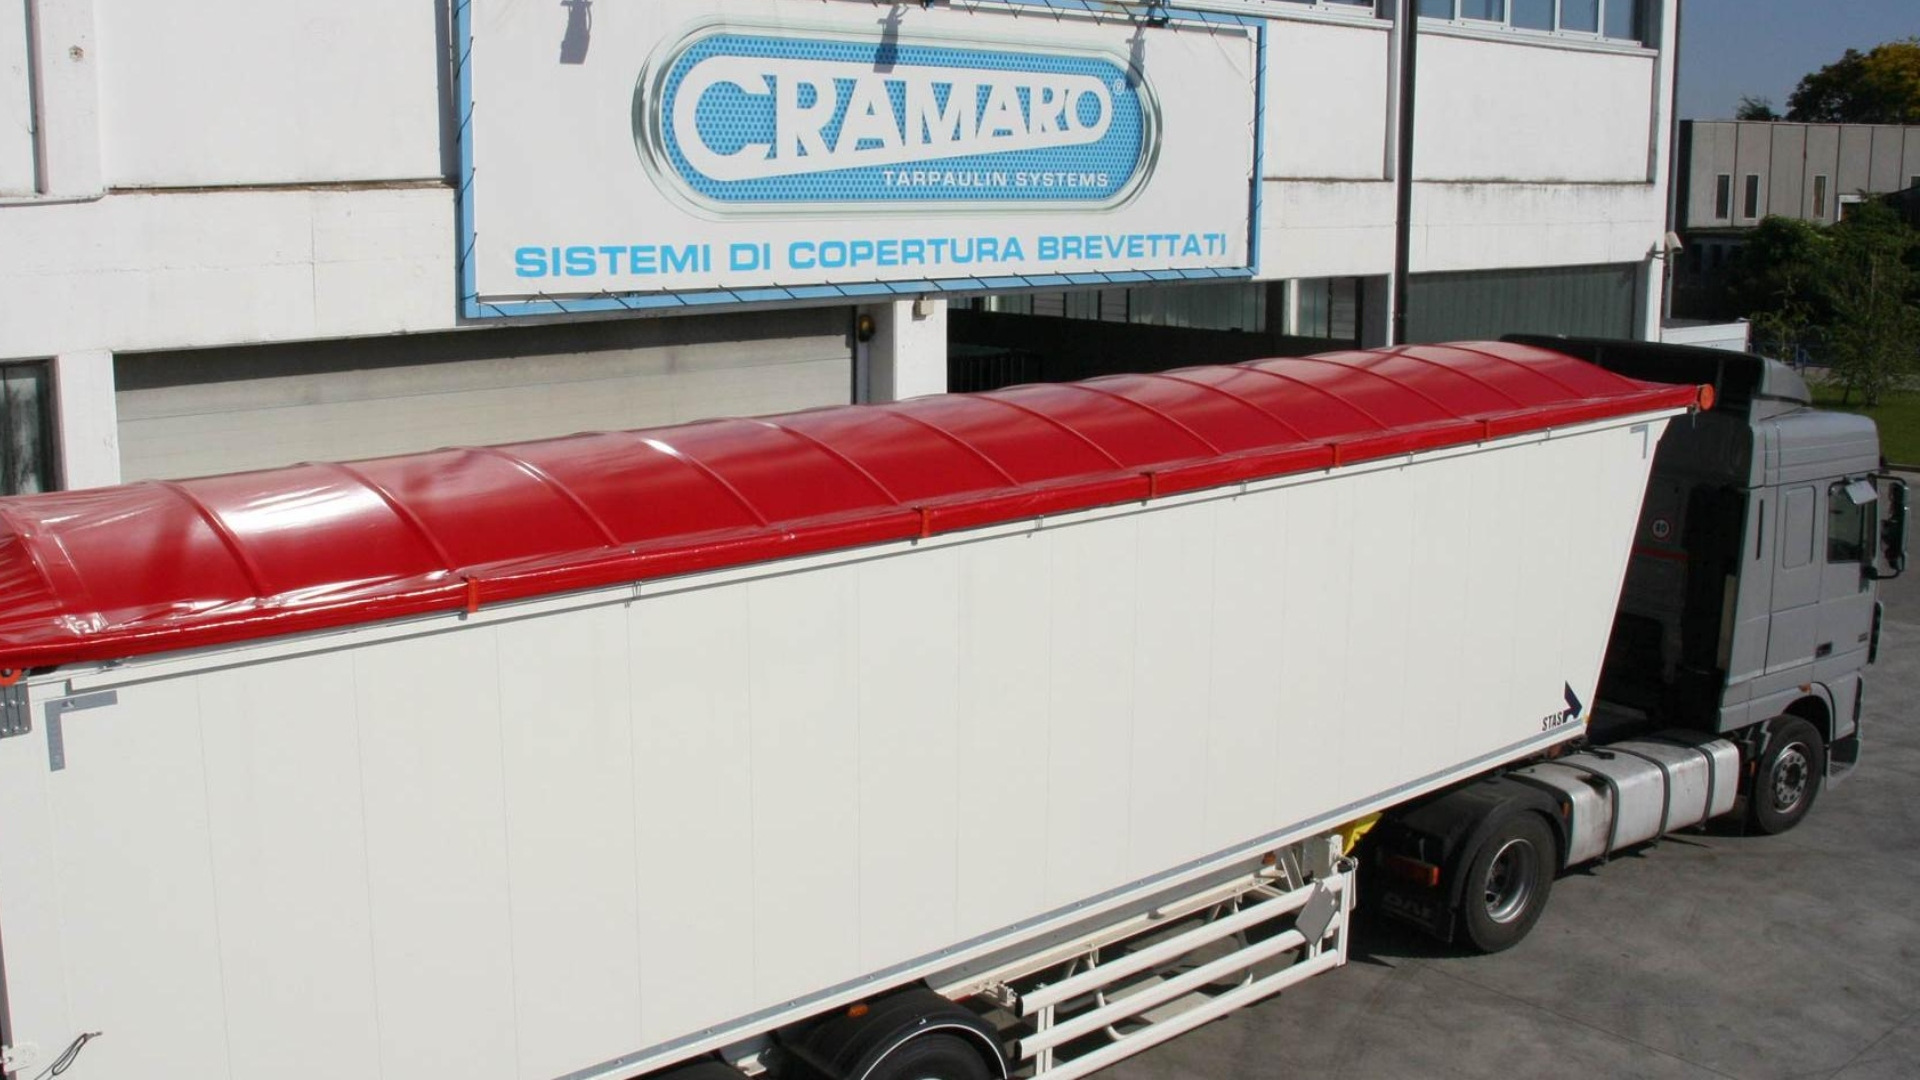 Cramaro Tarpaulin Systems has been acquired by Lifco AB